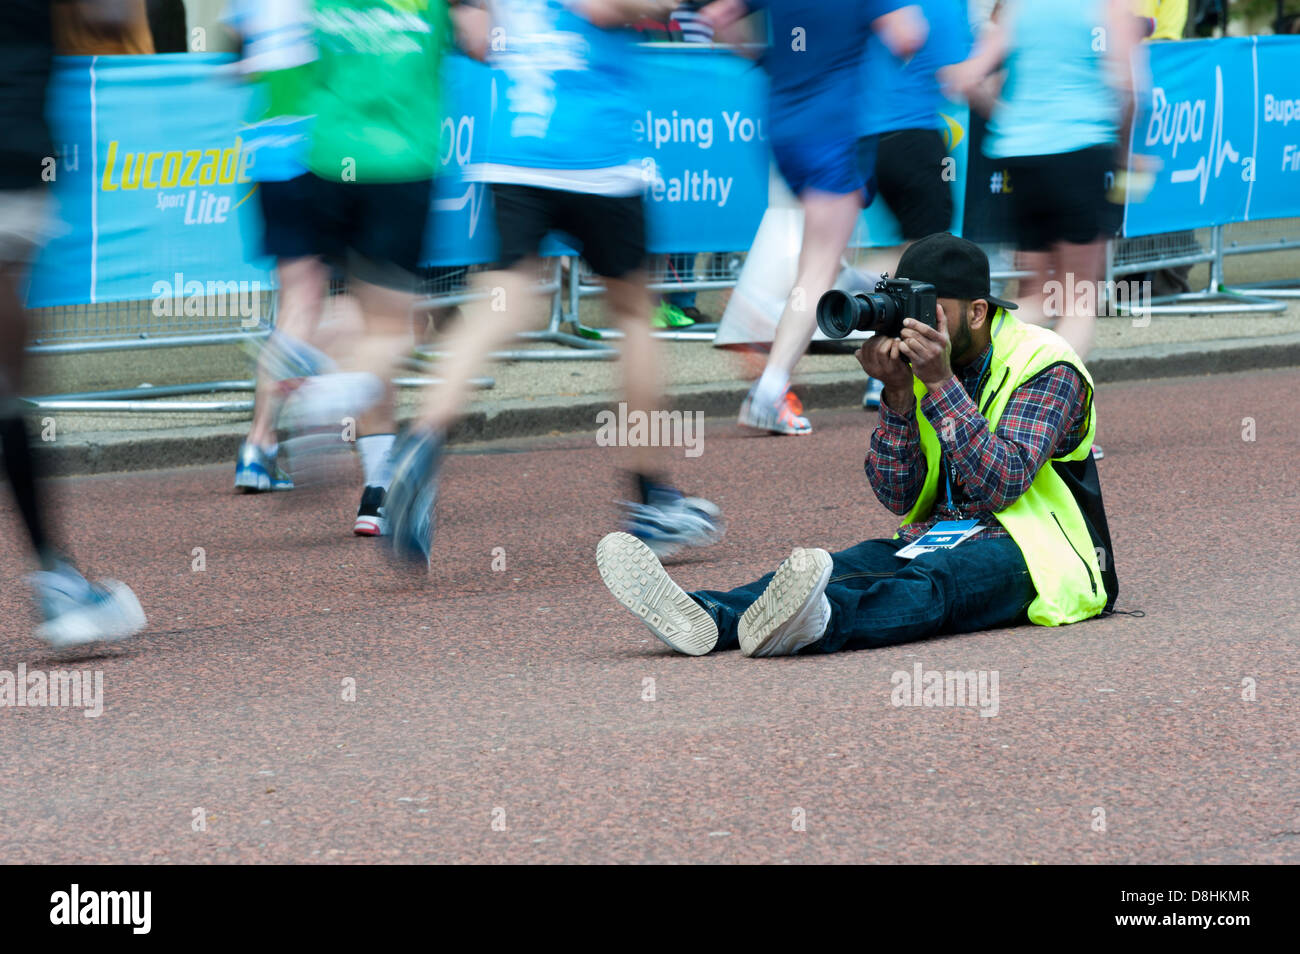 A marathon foto photographer taking photos at the BUPA London 10k run 2013, sitting in road with blurred runners - Stock Image